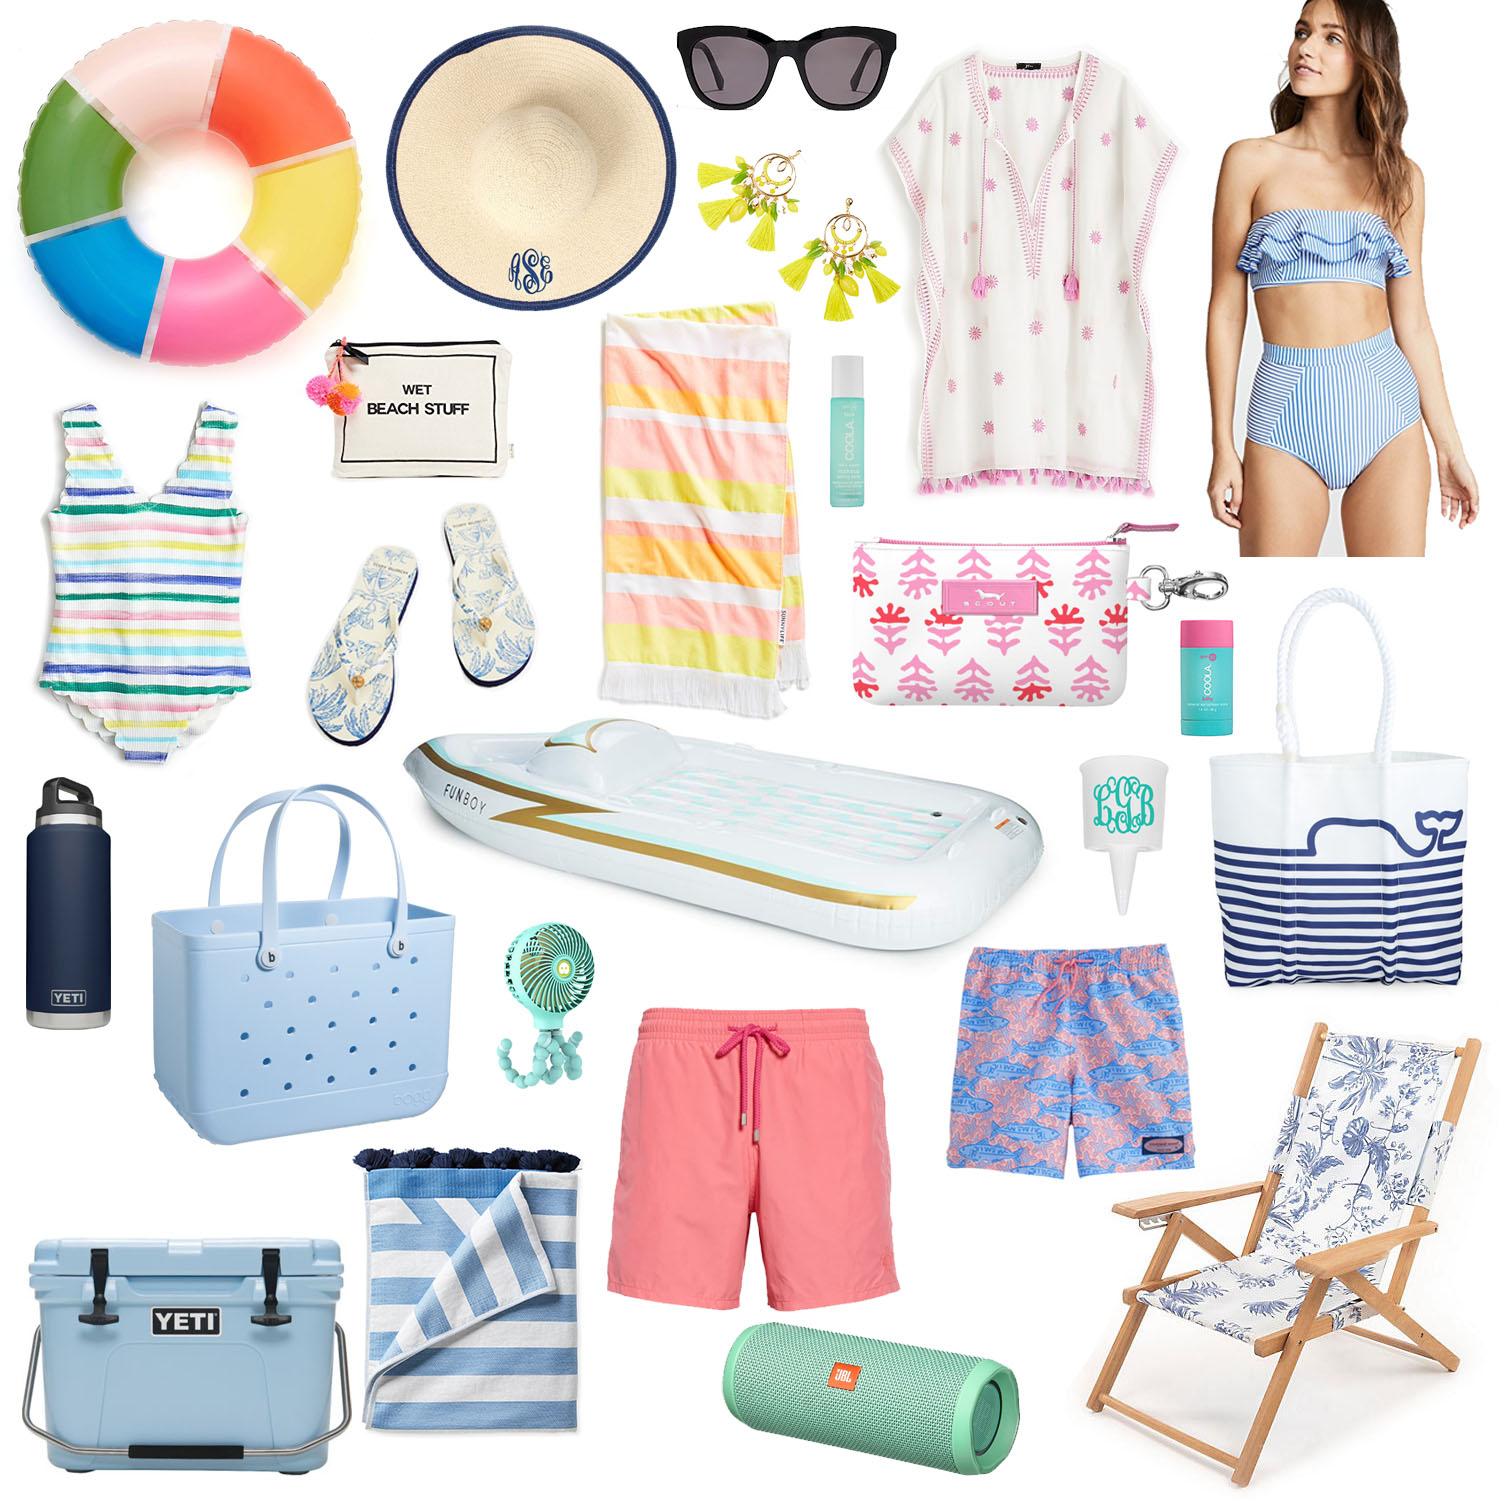 FAMILY BEACH DAY - I rounded up all my favorite beach day essentials for the whole family. After moving to the beach I've realized just how much STUFF you need to bring with you — Y'all I feel like I'm moving in every time we head for sand.